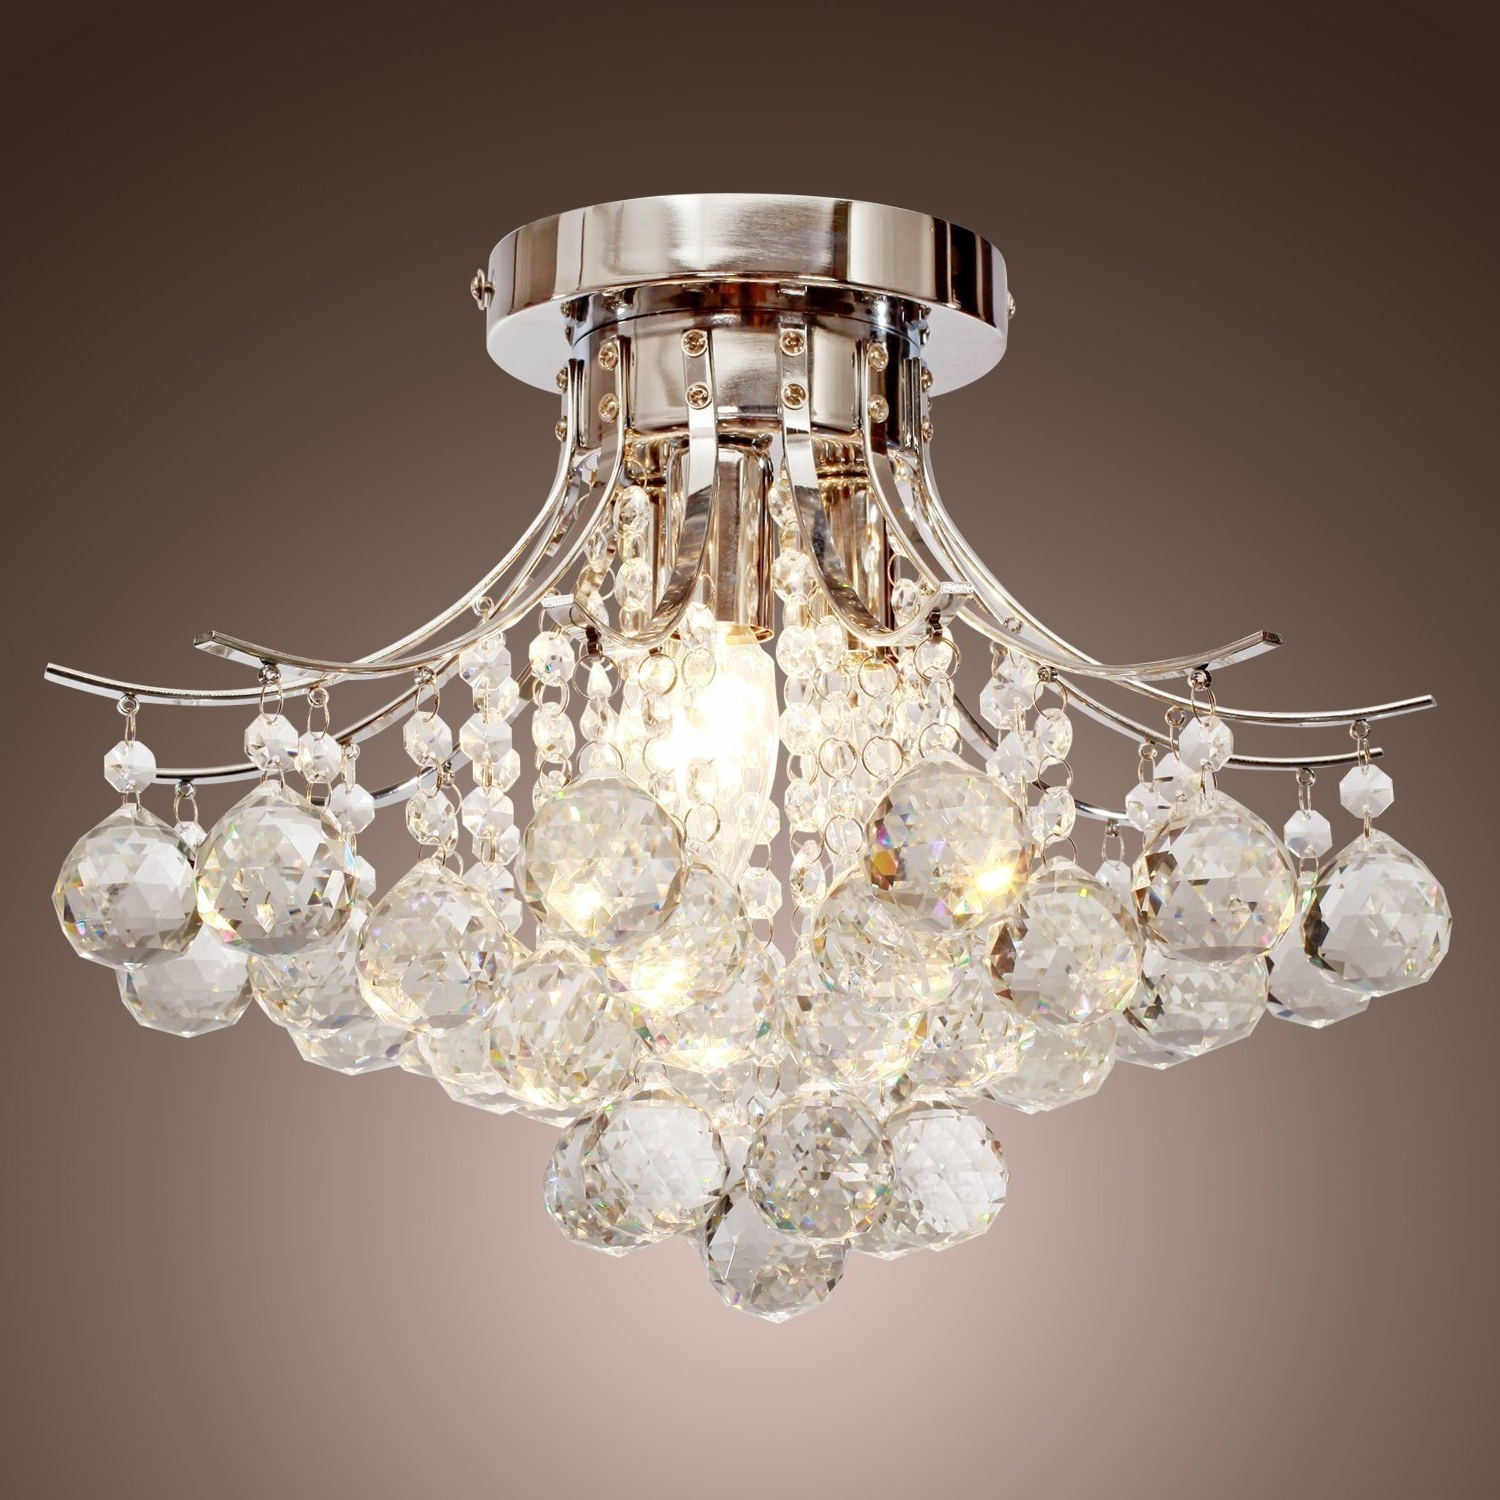 Newest Small Chandeliers For Low Ceilings Intended For Light : Living Room Ceiling Lights Close To Flush Mount Lighting (View 8 of 15)